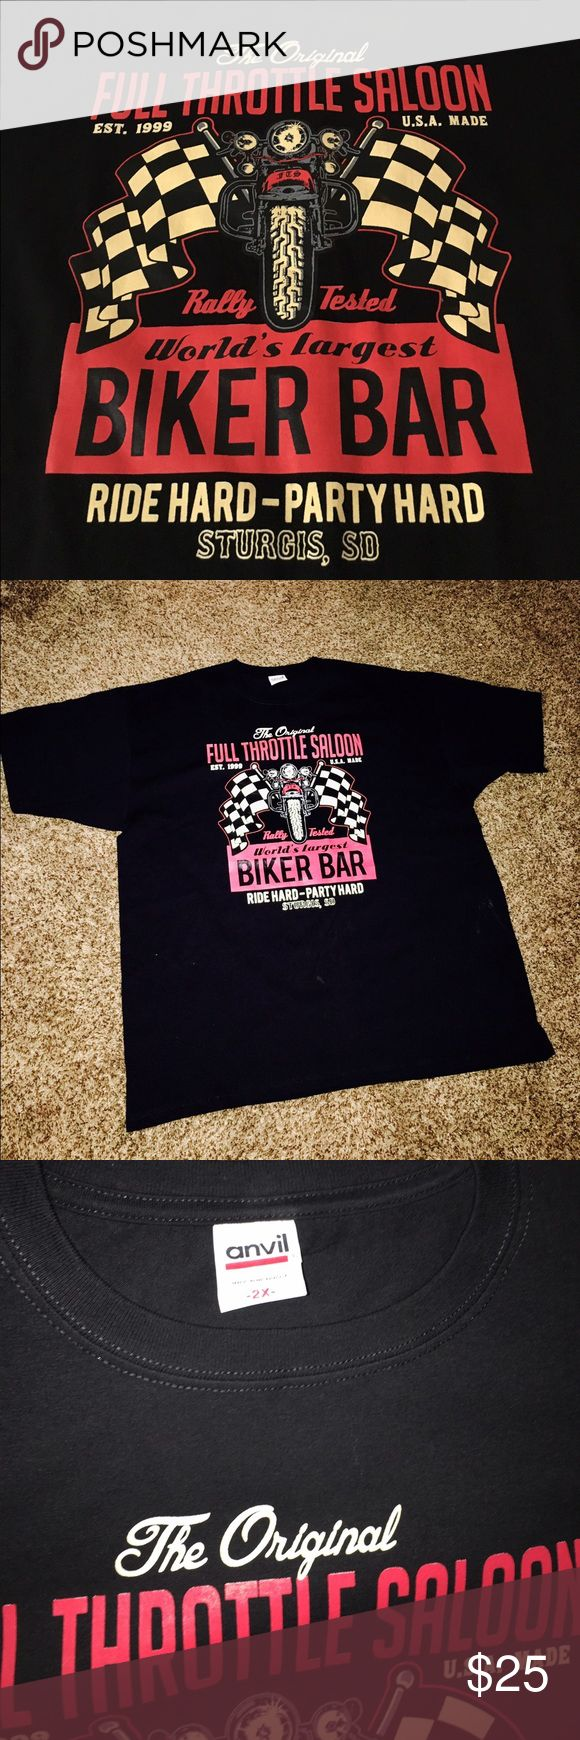 Biker Bar T-shirt, 2X NWOT Center front The Original Full Throttle Saloon Print. This premium t-shirt is as close to perfect as can be, comfortable and durable, this is a definite must-own, recommended product. Printed in New York 100%cotton new, no tag Shirts Tees - Short Sleeve